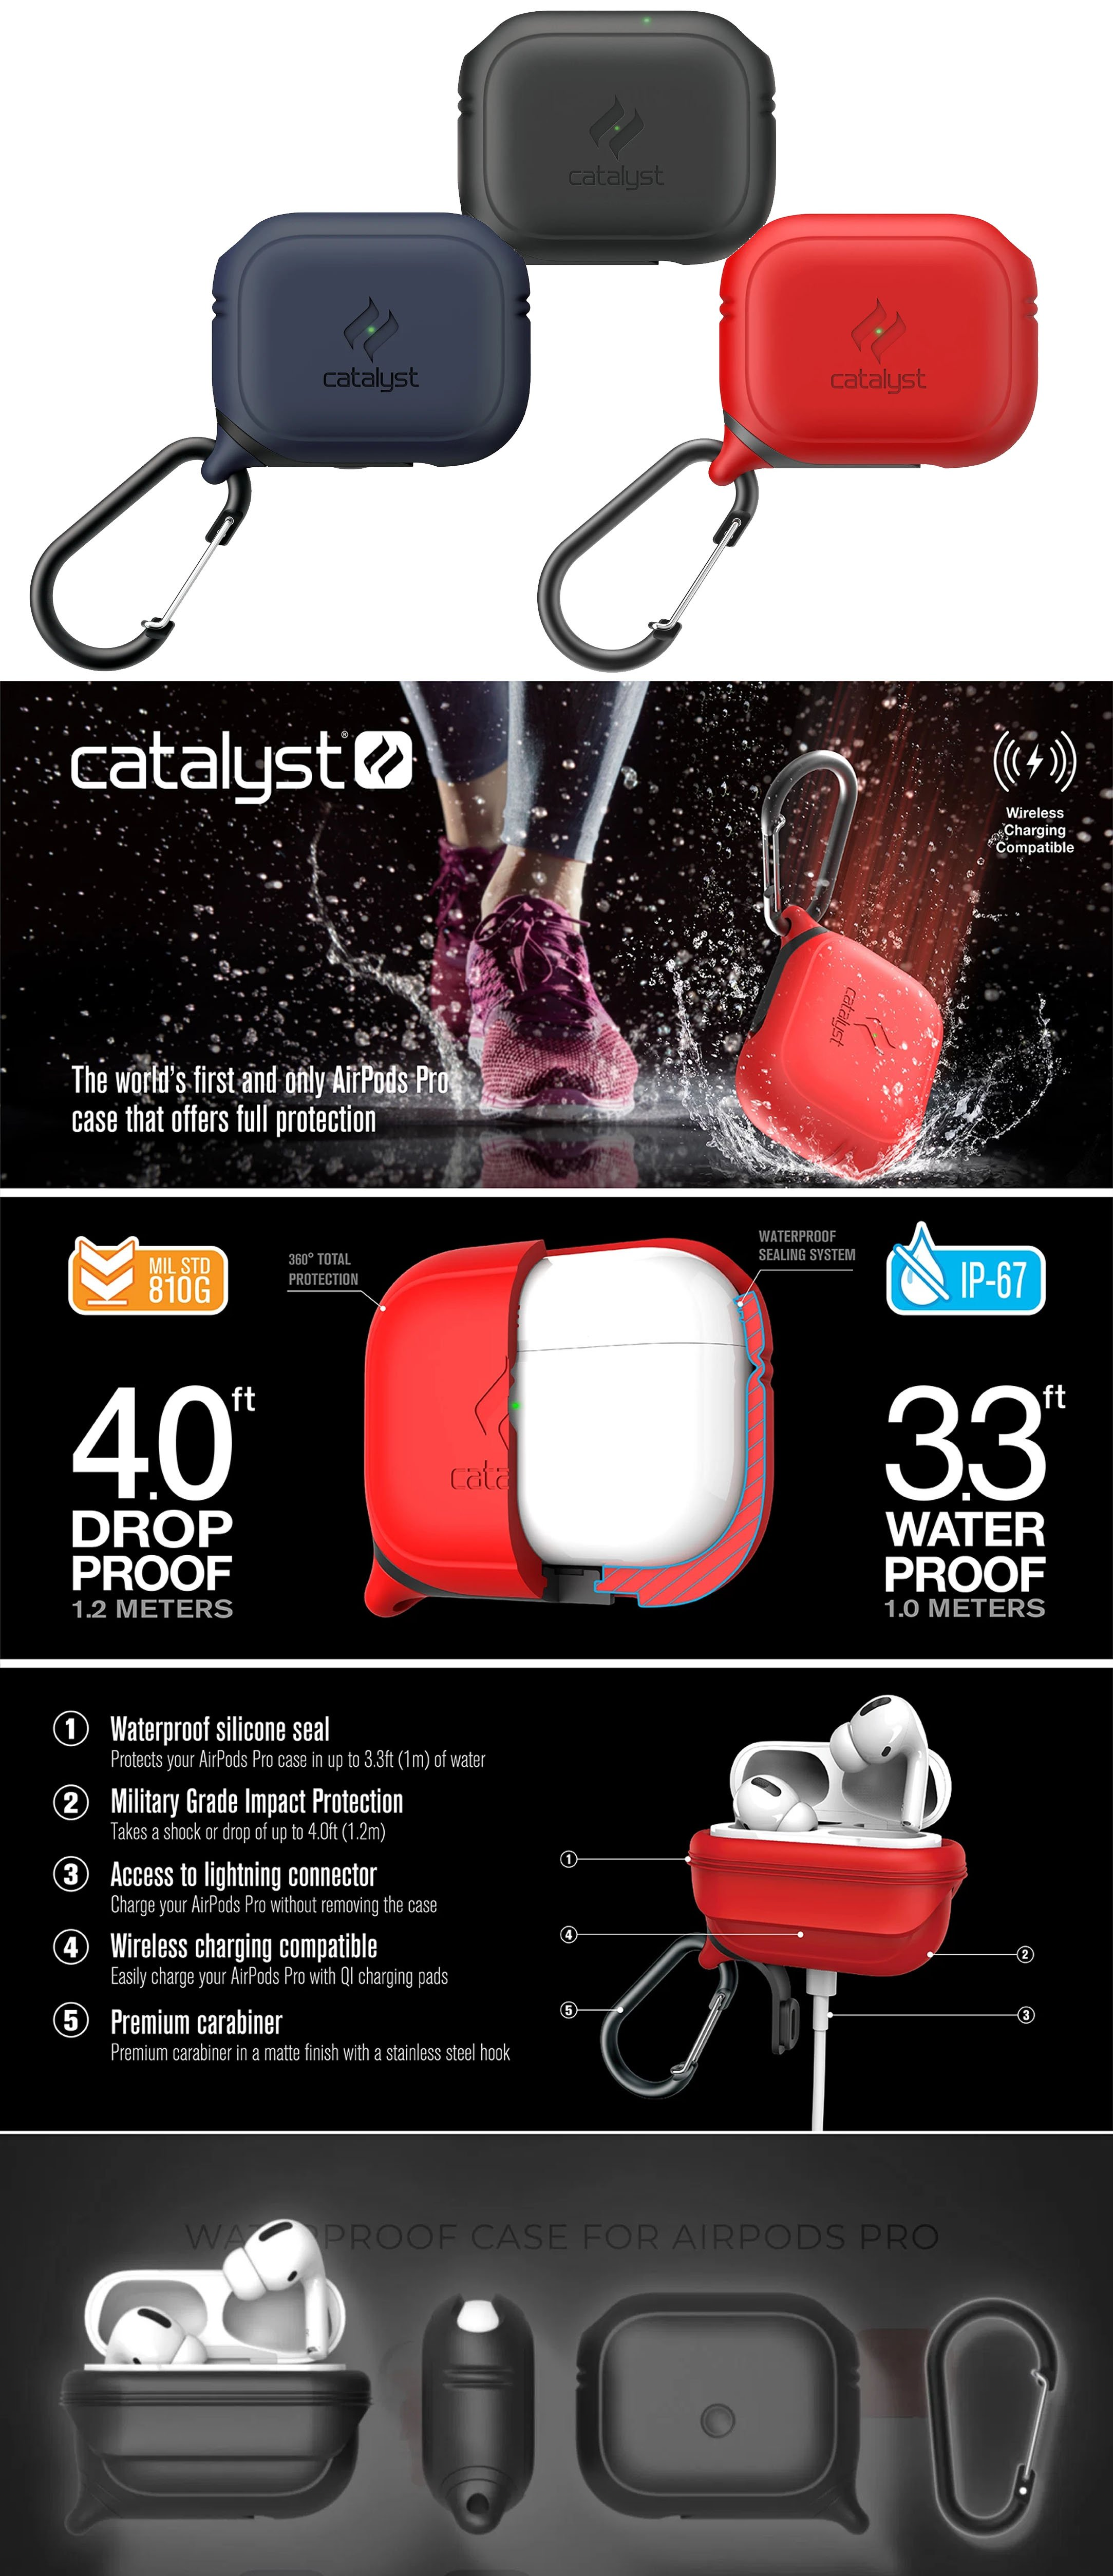 catalyst/252525/1-des-fx-catalyst-waterproof-case-airpods-stealth-black-color-252525-malaysia-authorised-retailer